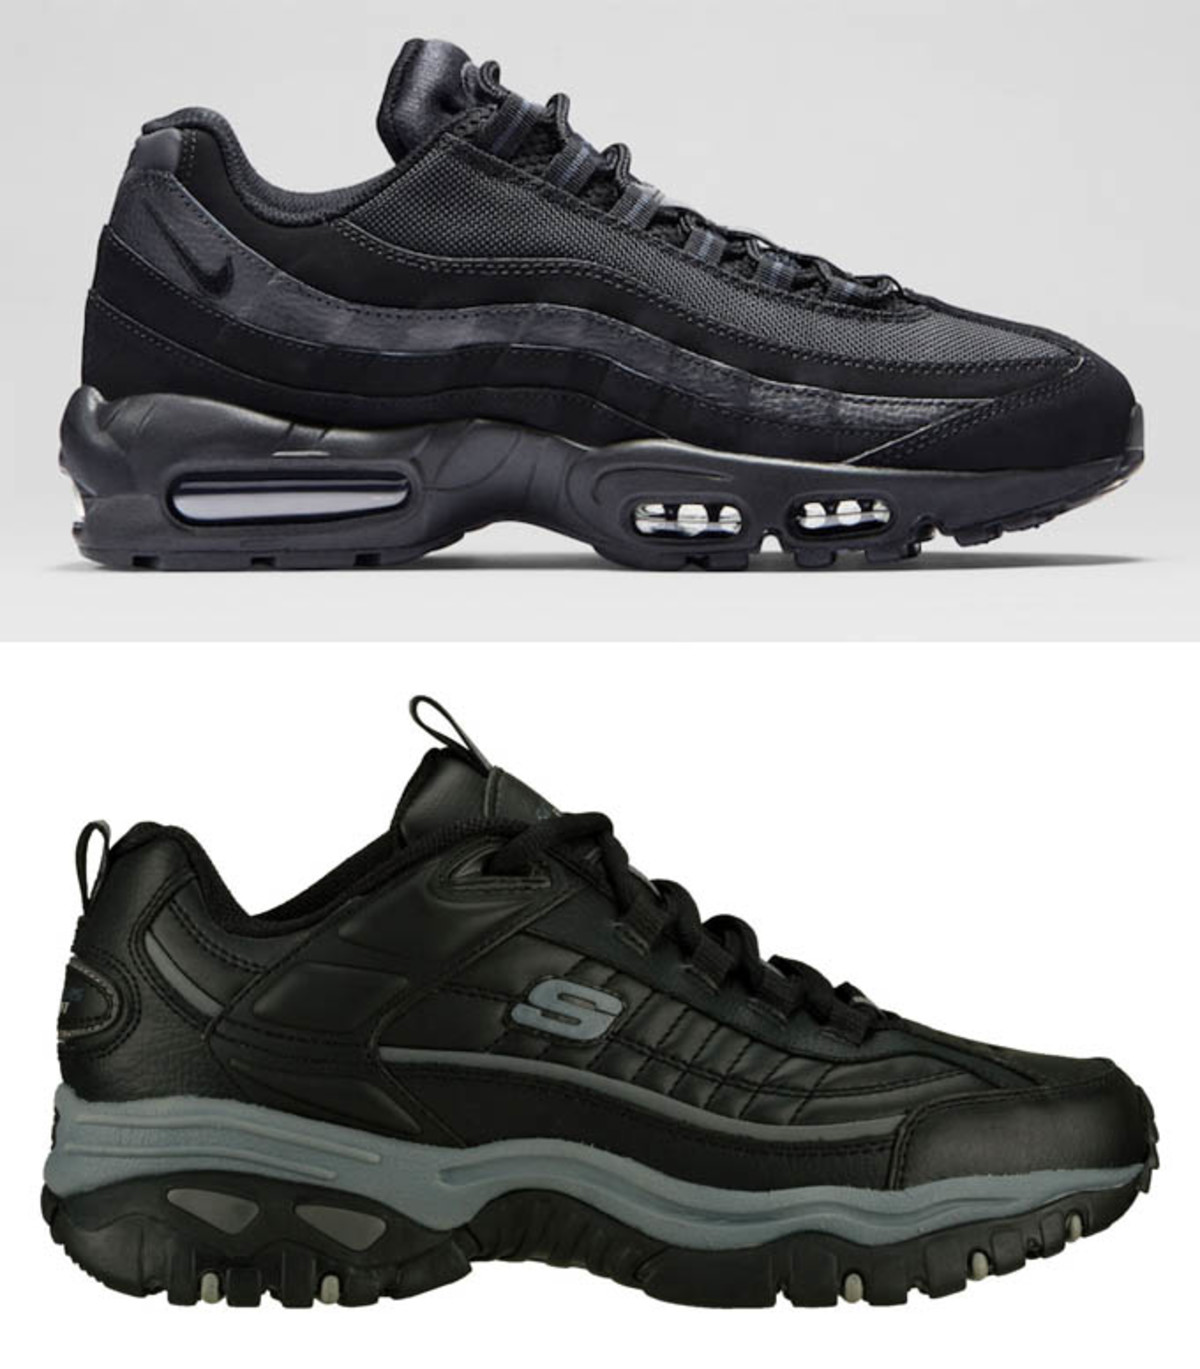 Nike Air Max 95 / Skechers Energy U2013 After Burn - Worst Fake Skechers | Sole Collector